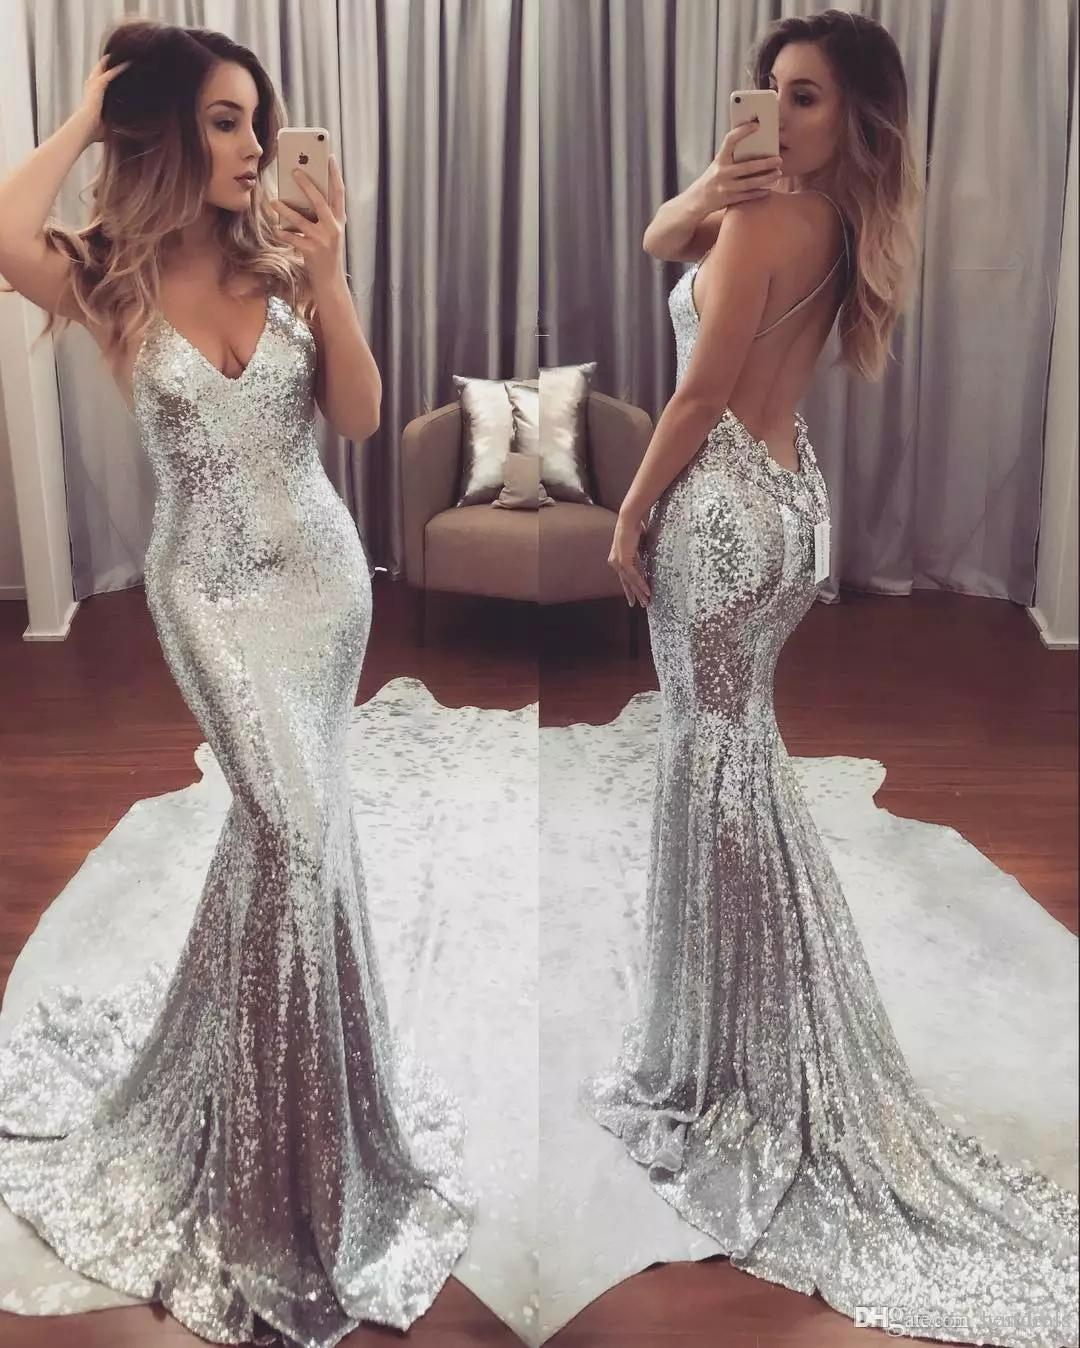 Silver Bling Sequined Mermaid Prom Dresses 2018 Chic V Neck Spaghetti Strap Sexy Backless Evening Dresses Party Gowns Holiday